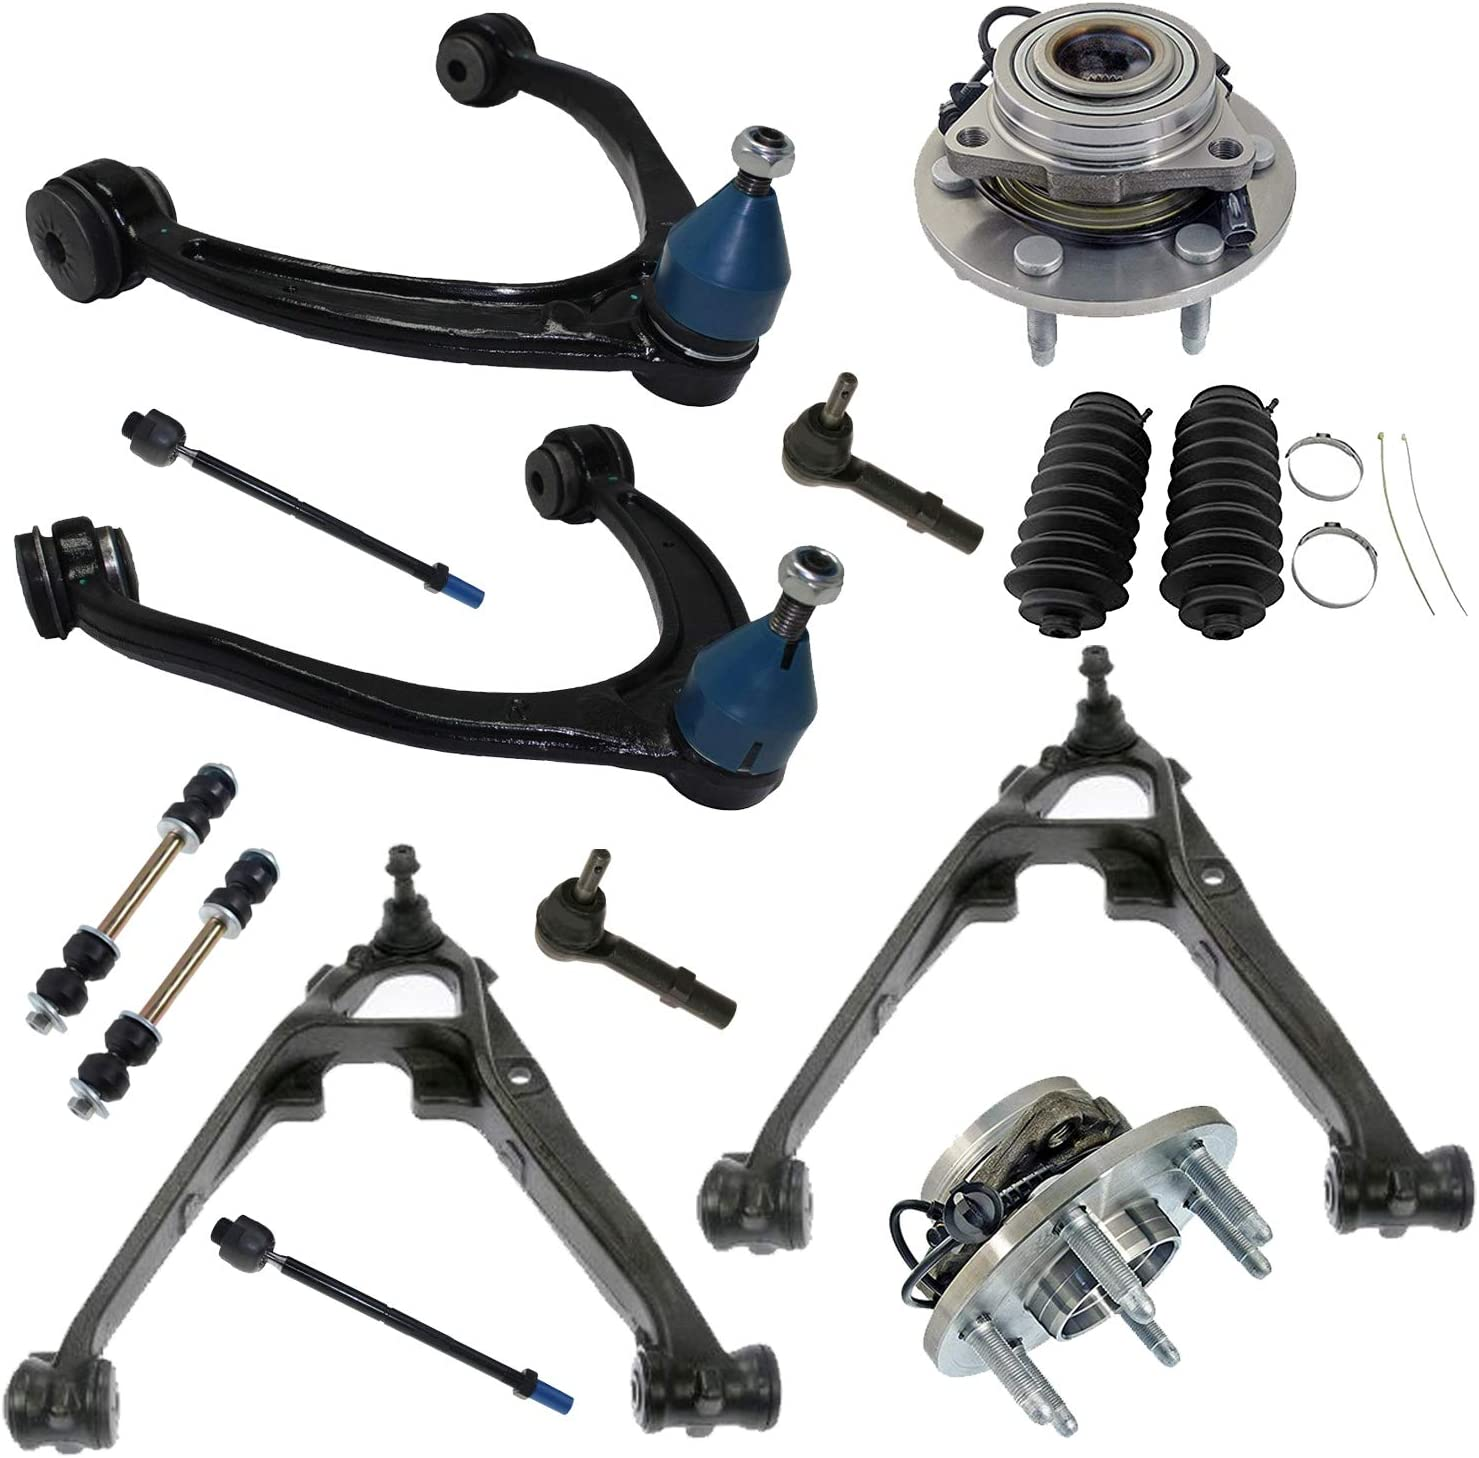 10-Year Warranty- Cadillac Both Front Lower Control Arms /& Ball Joint Inner /& Outer Tie Rod Ends ; 2 Sway bar links/… 2 New Complete 8-Piece Front Suspension Kit 4 Detroit Axle All